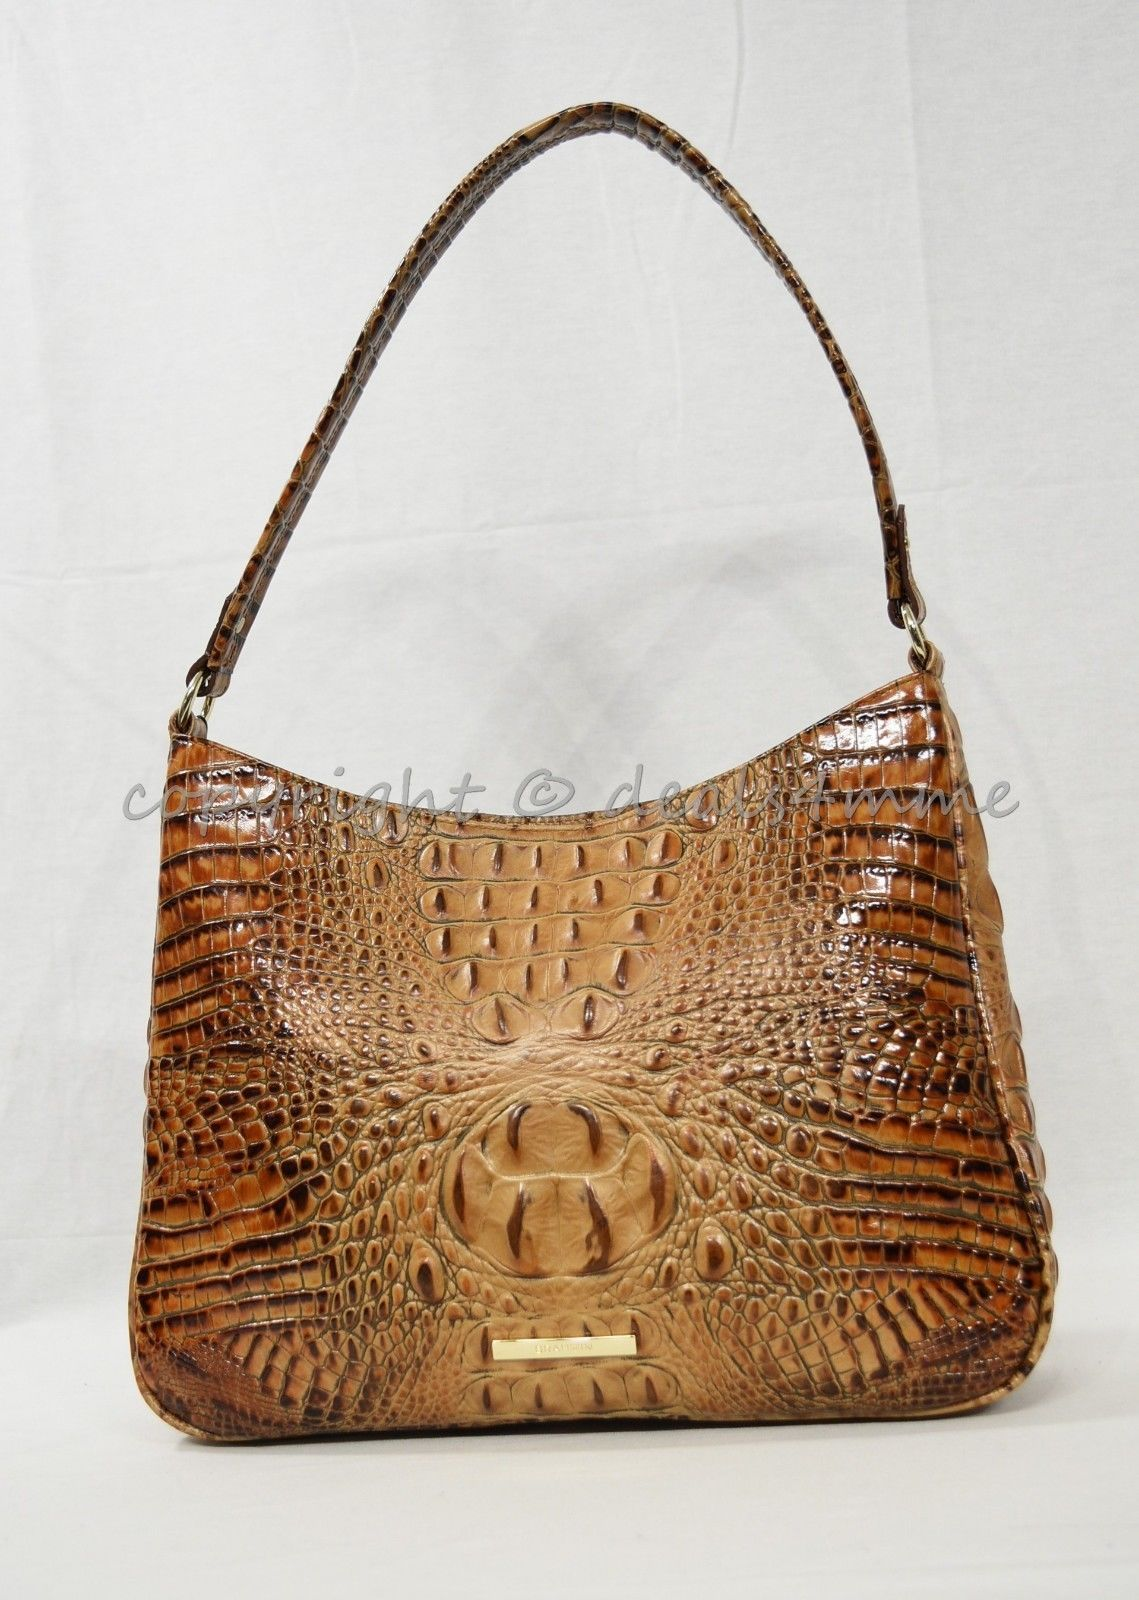 NWT Brahmin Noelle Leather Tote / Shoulder Bag in Toasted Almond Melbourne